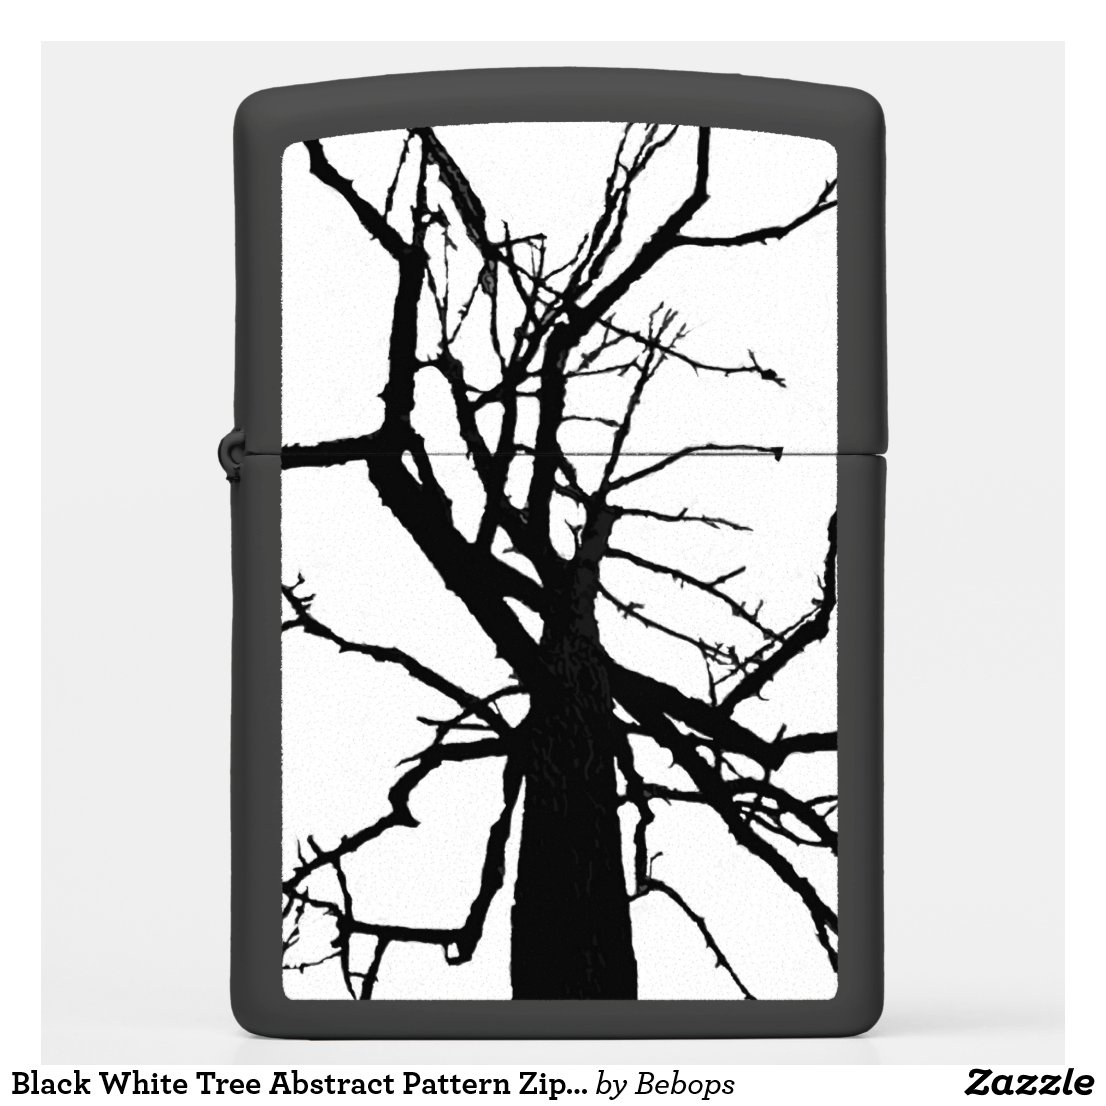 Black White Tree Abstract Pattern Zippo Lighter